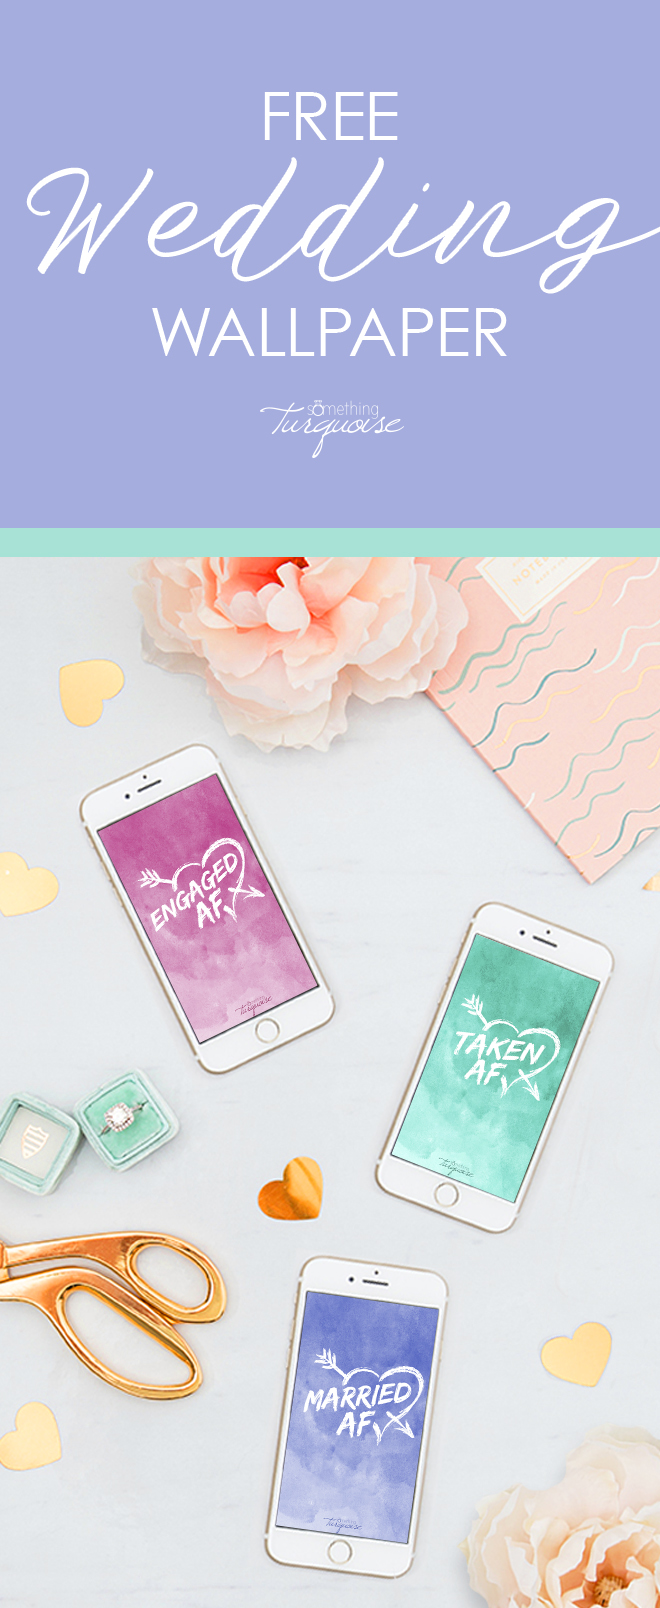 How freaking adorable are these AF iPhone wallpaper downloads!? And they are free!